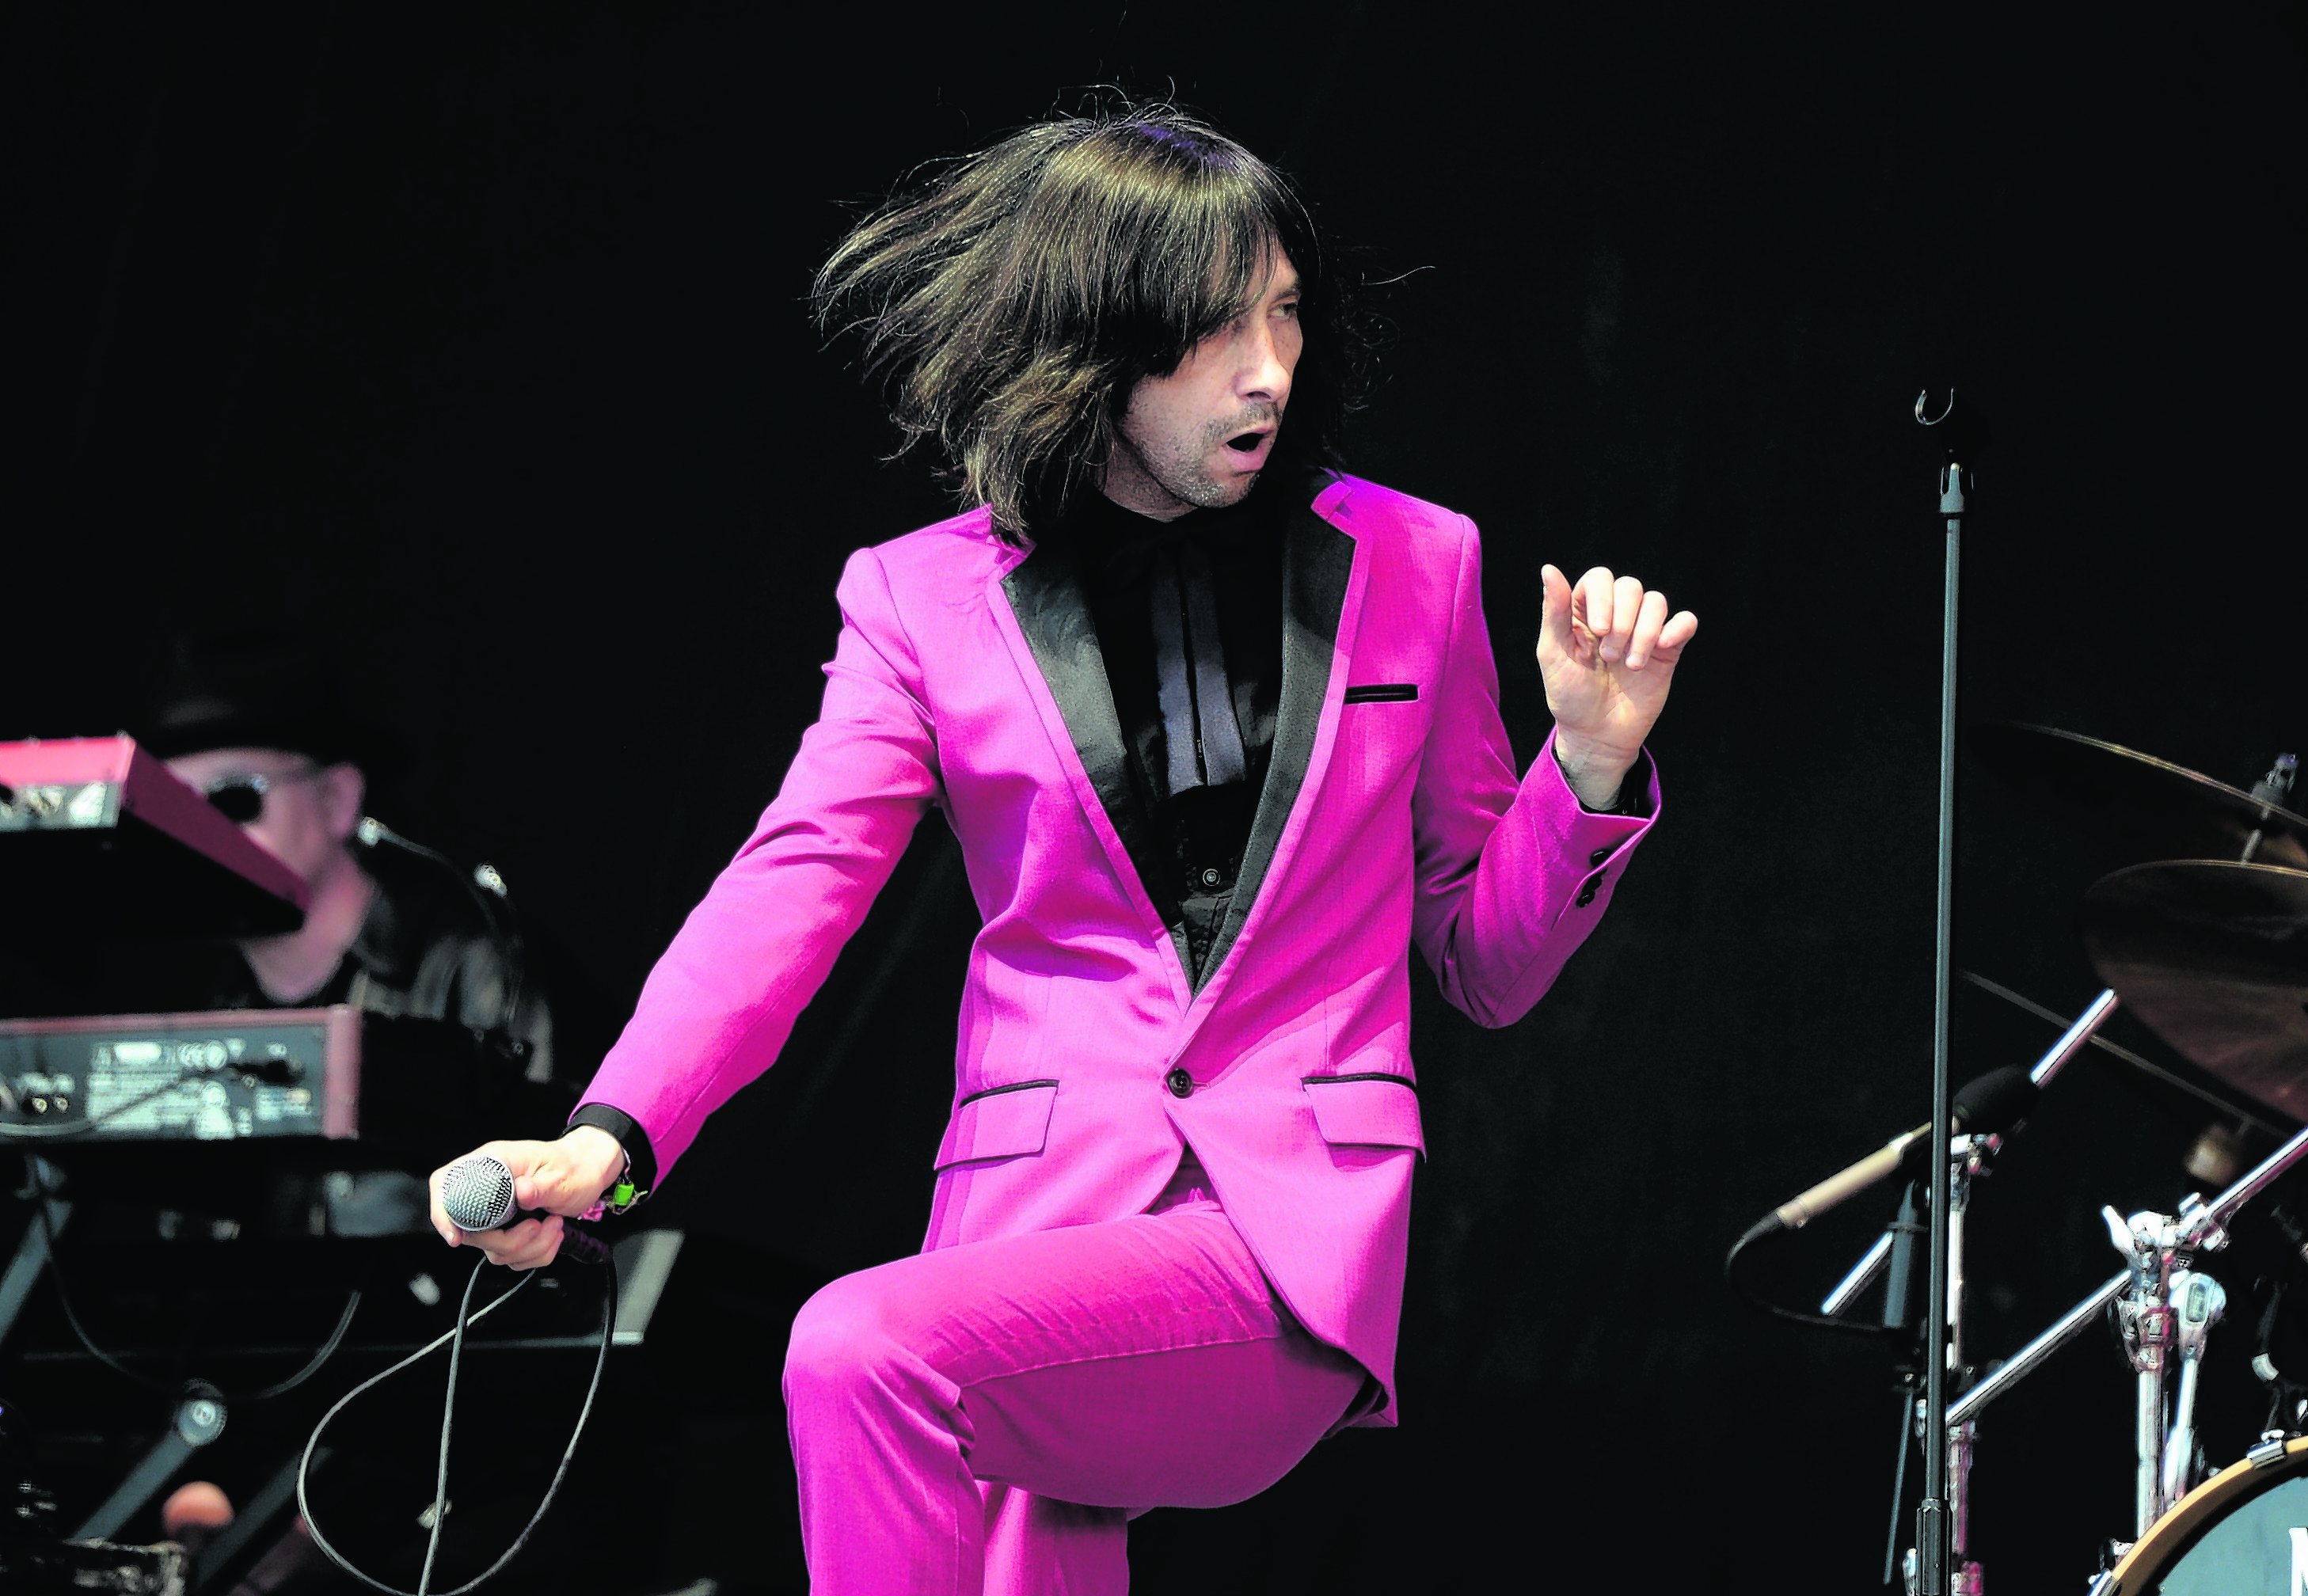 Bobby Gillespie from Primal Scream.